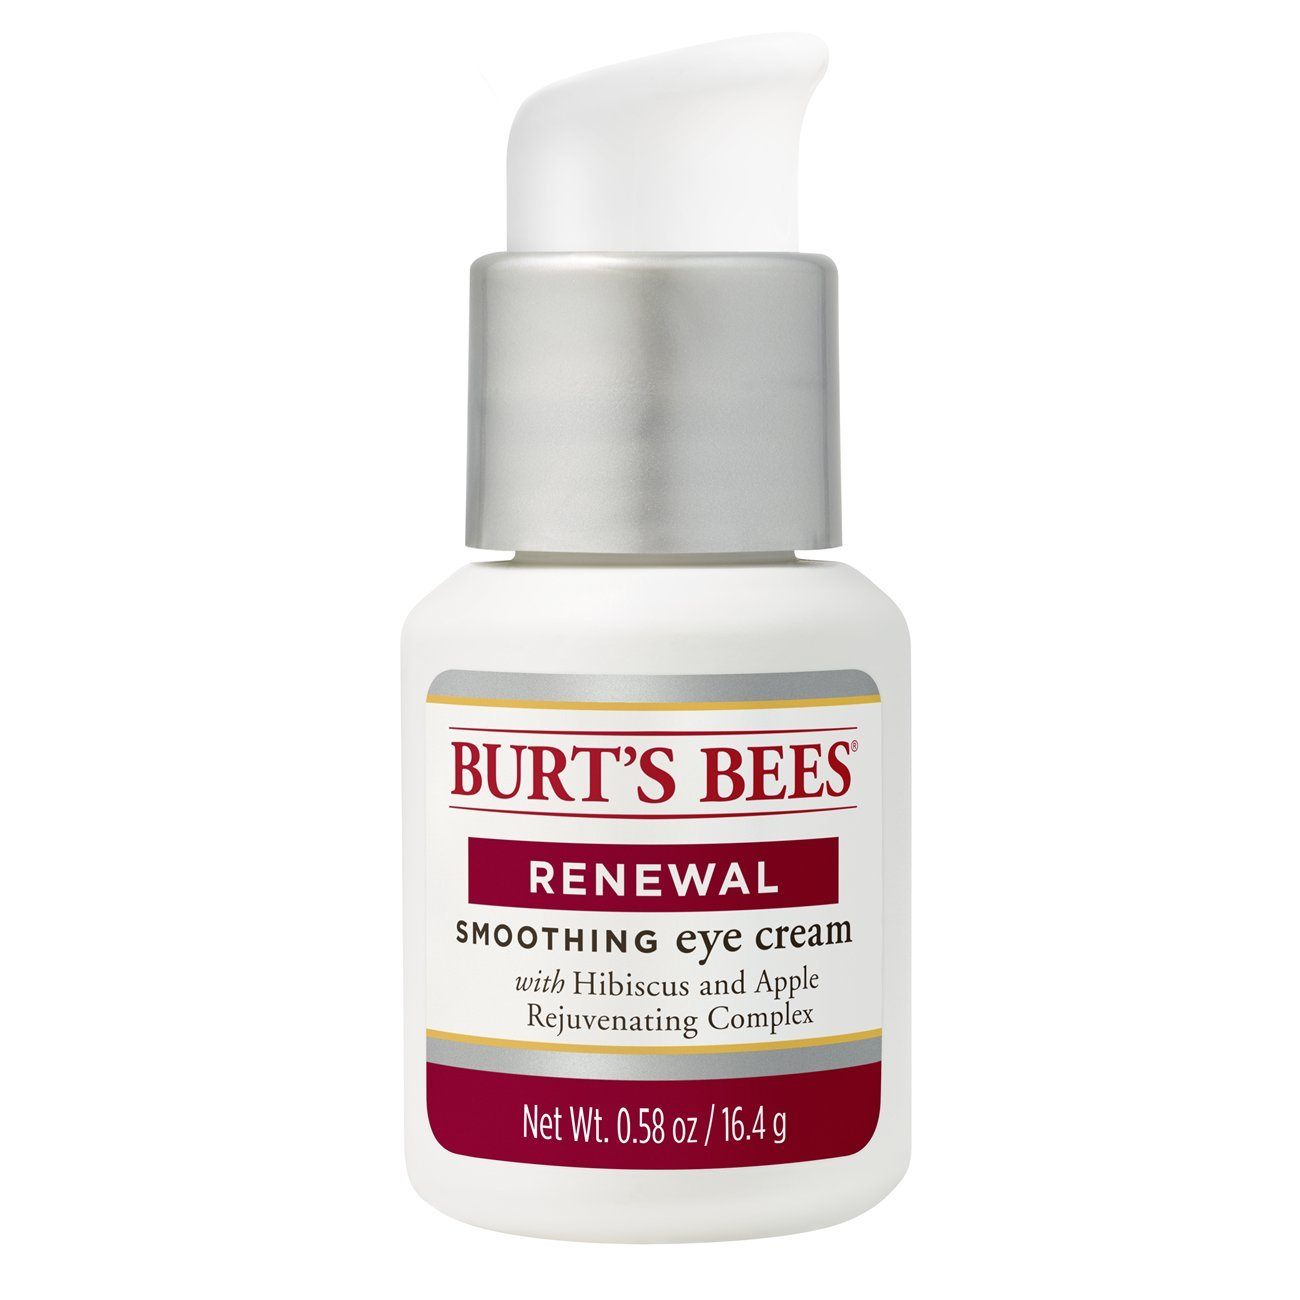 Burt's Bees Renewal Smoothing Eye Cream, 0.58 Ounce